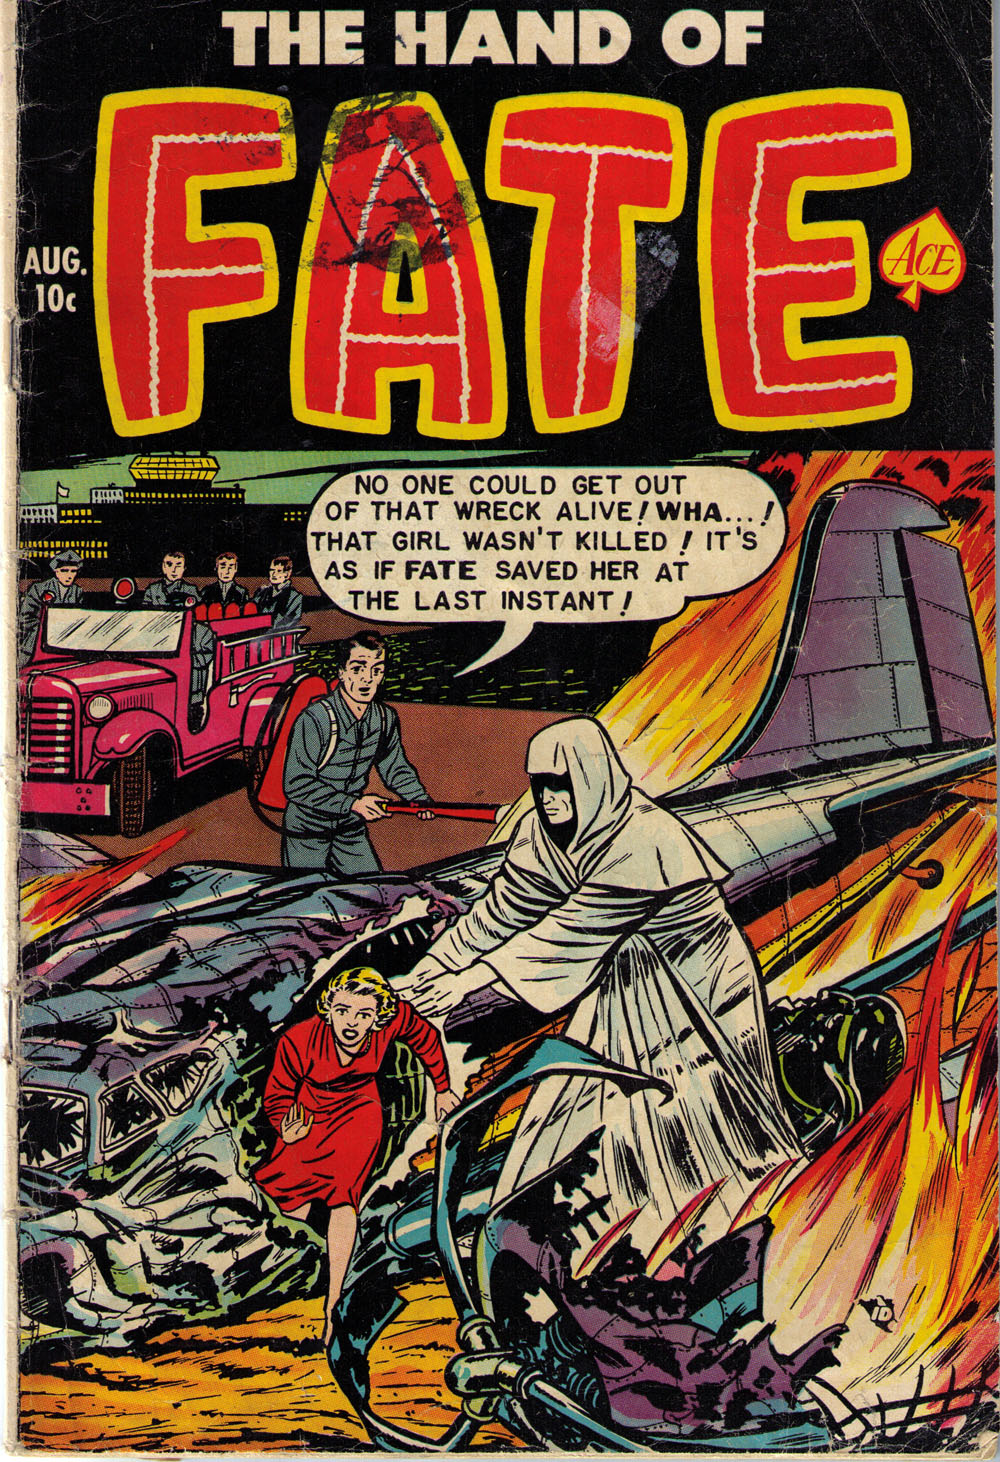 Hand of Fate (1951) Vol 1 12